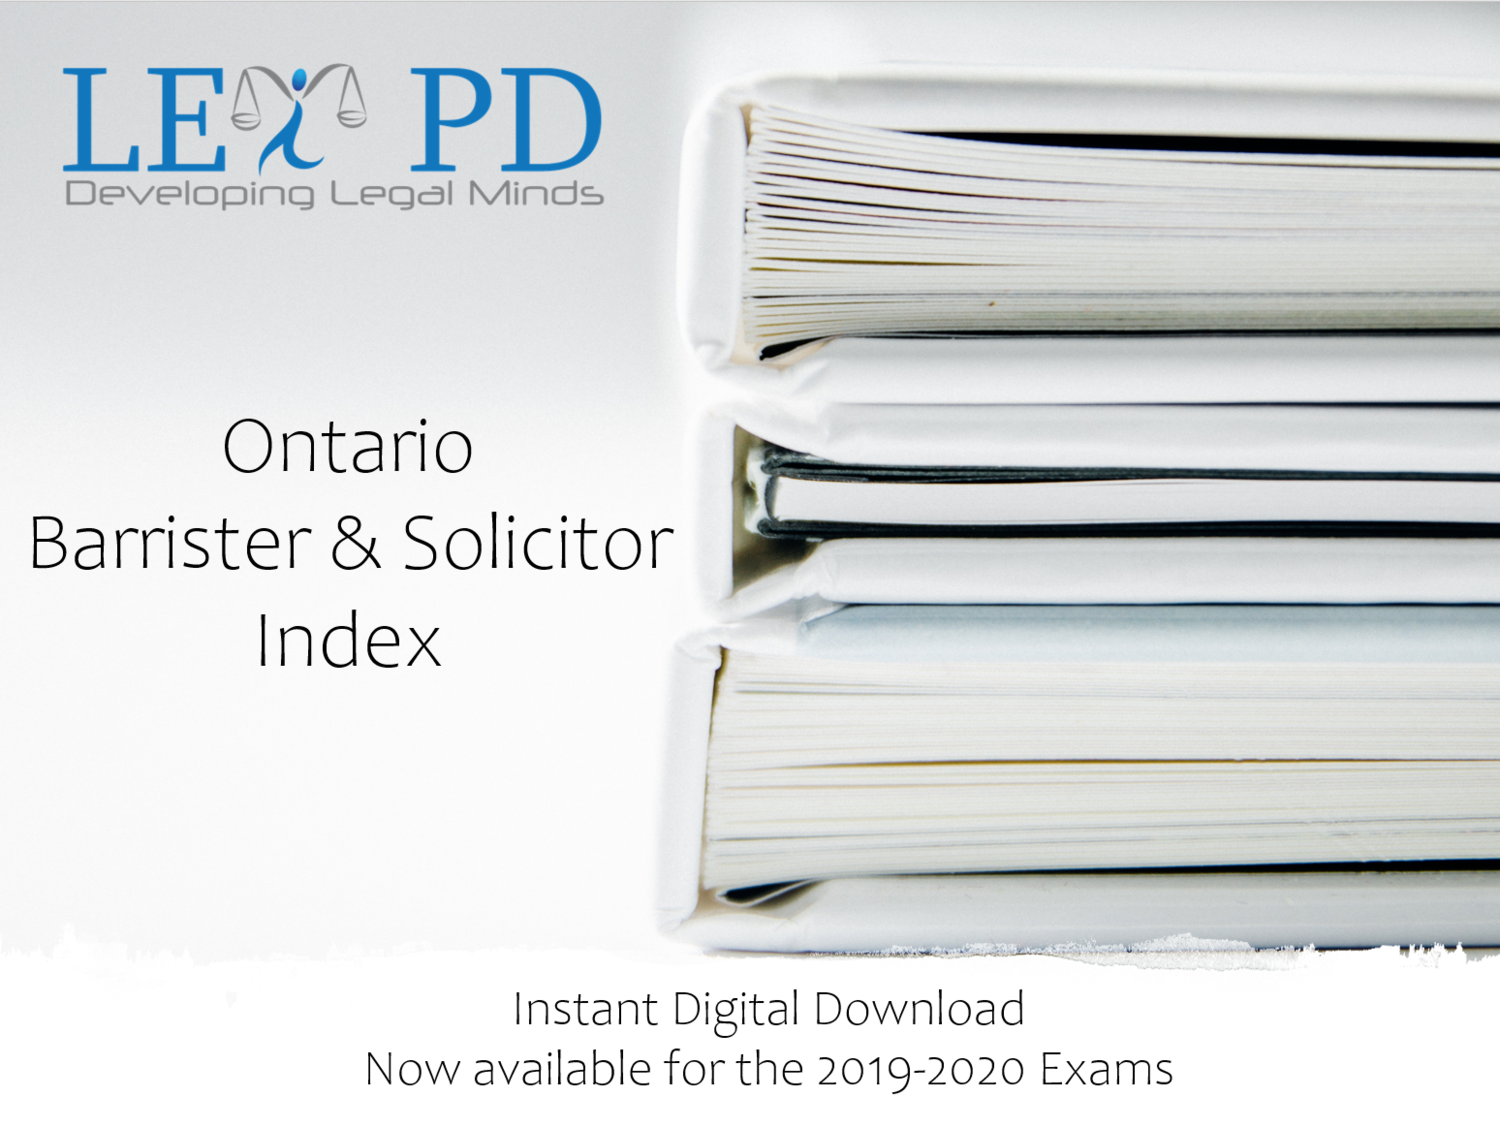 NCA Tutor™ - Ontario Barrister and Solicitor Indices 2019-2020